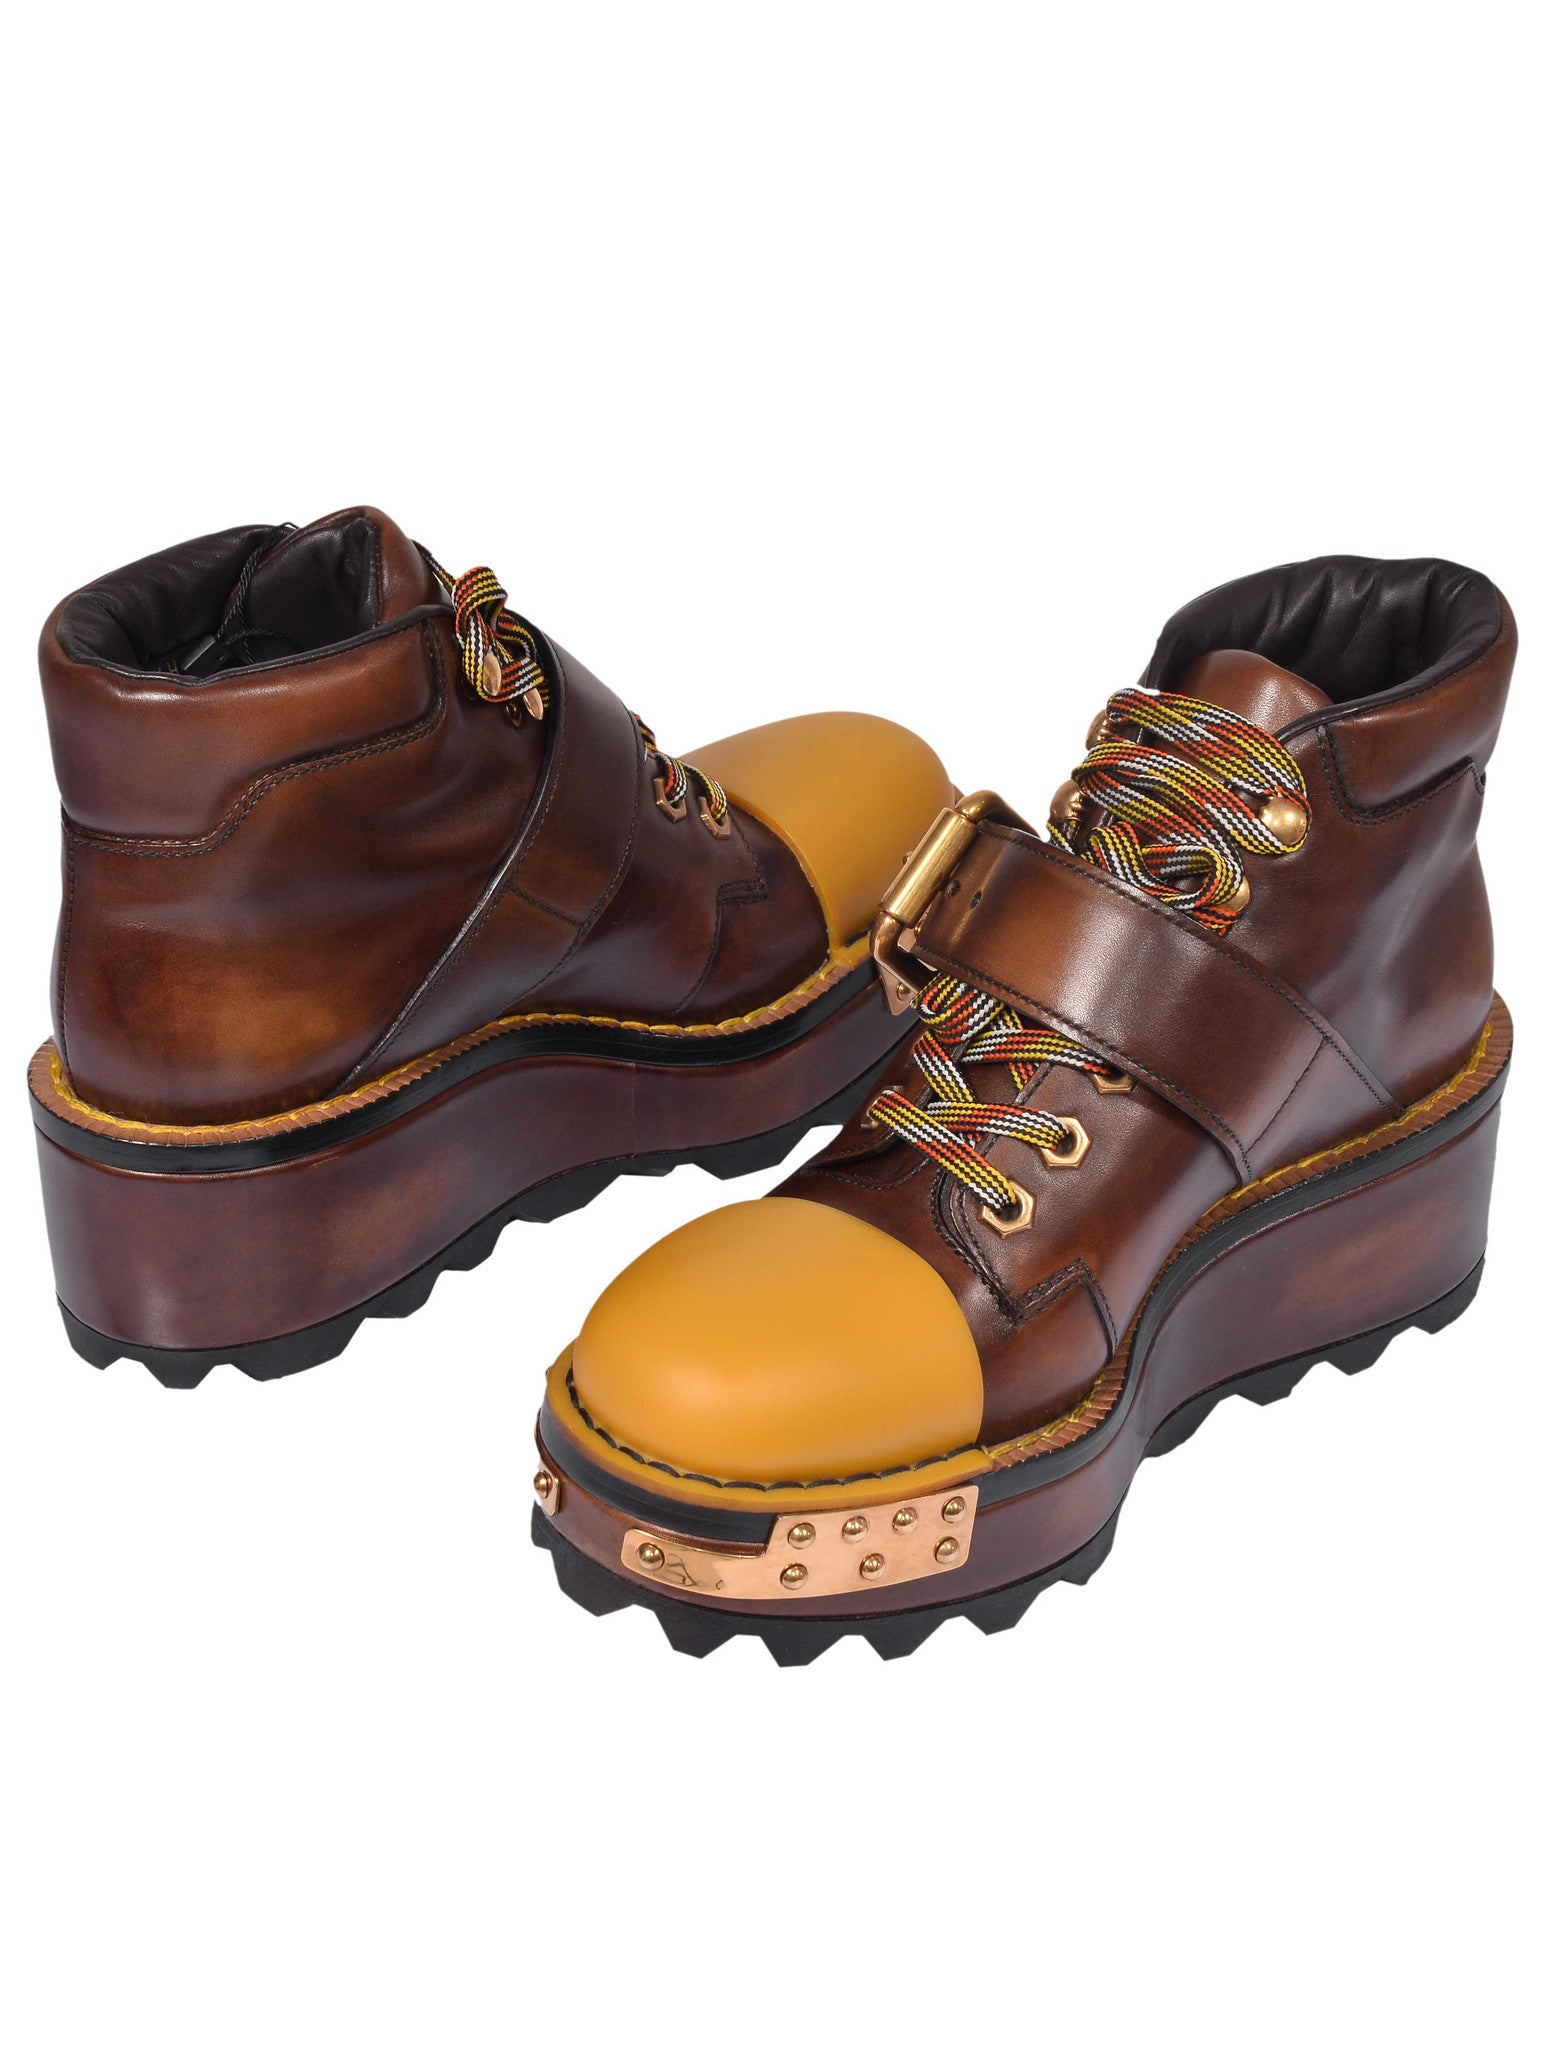 WOMENS CAP-TOE PLATFORM HIKING BOOTS